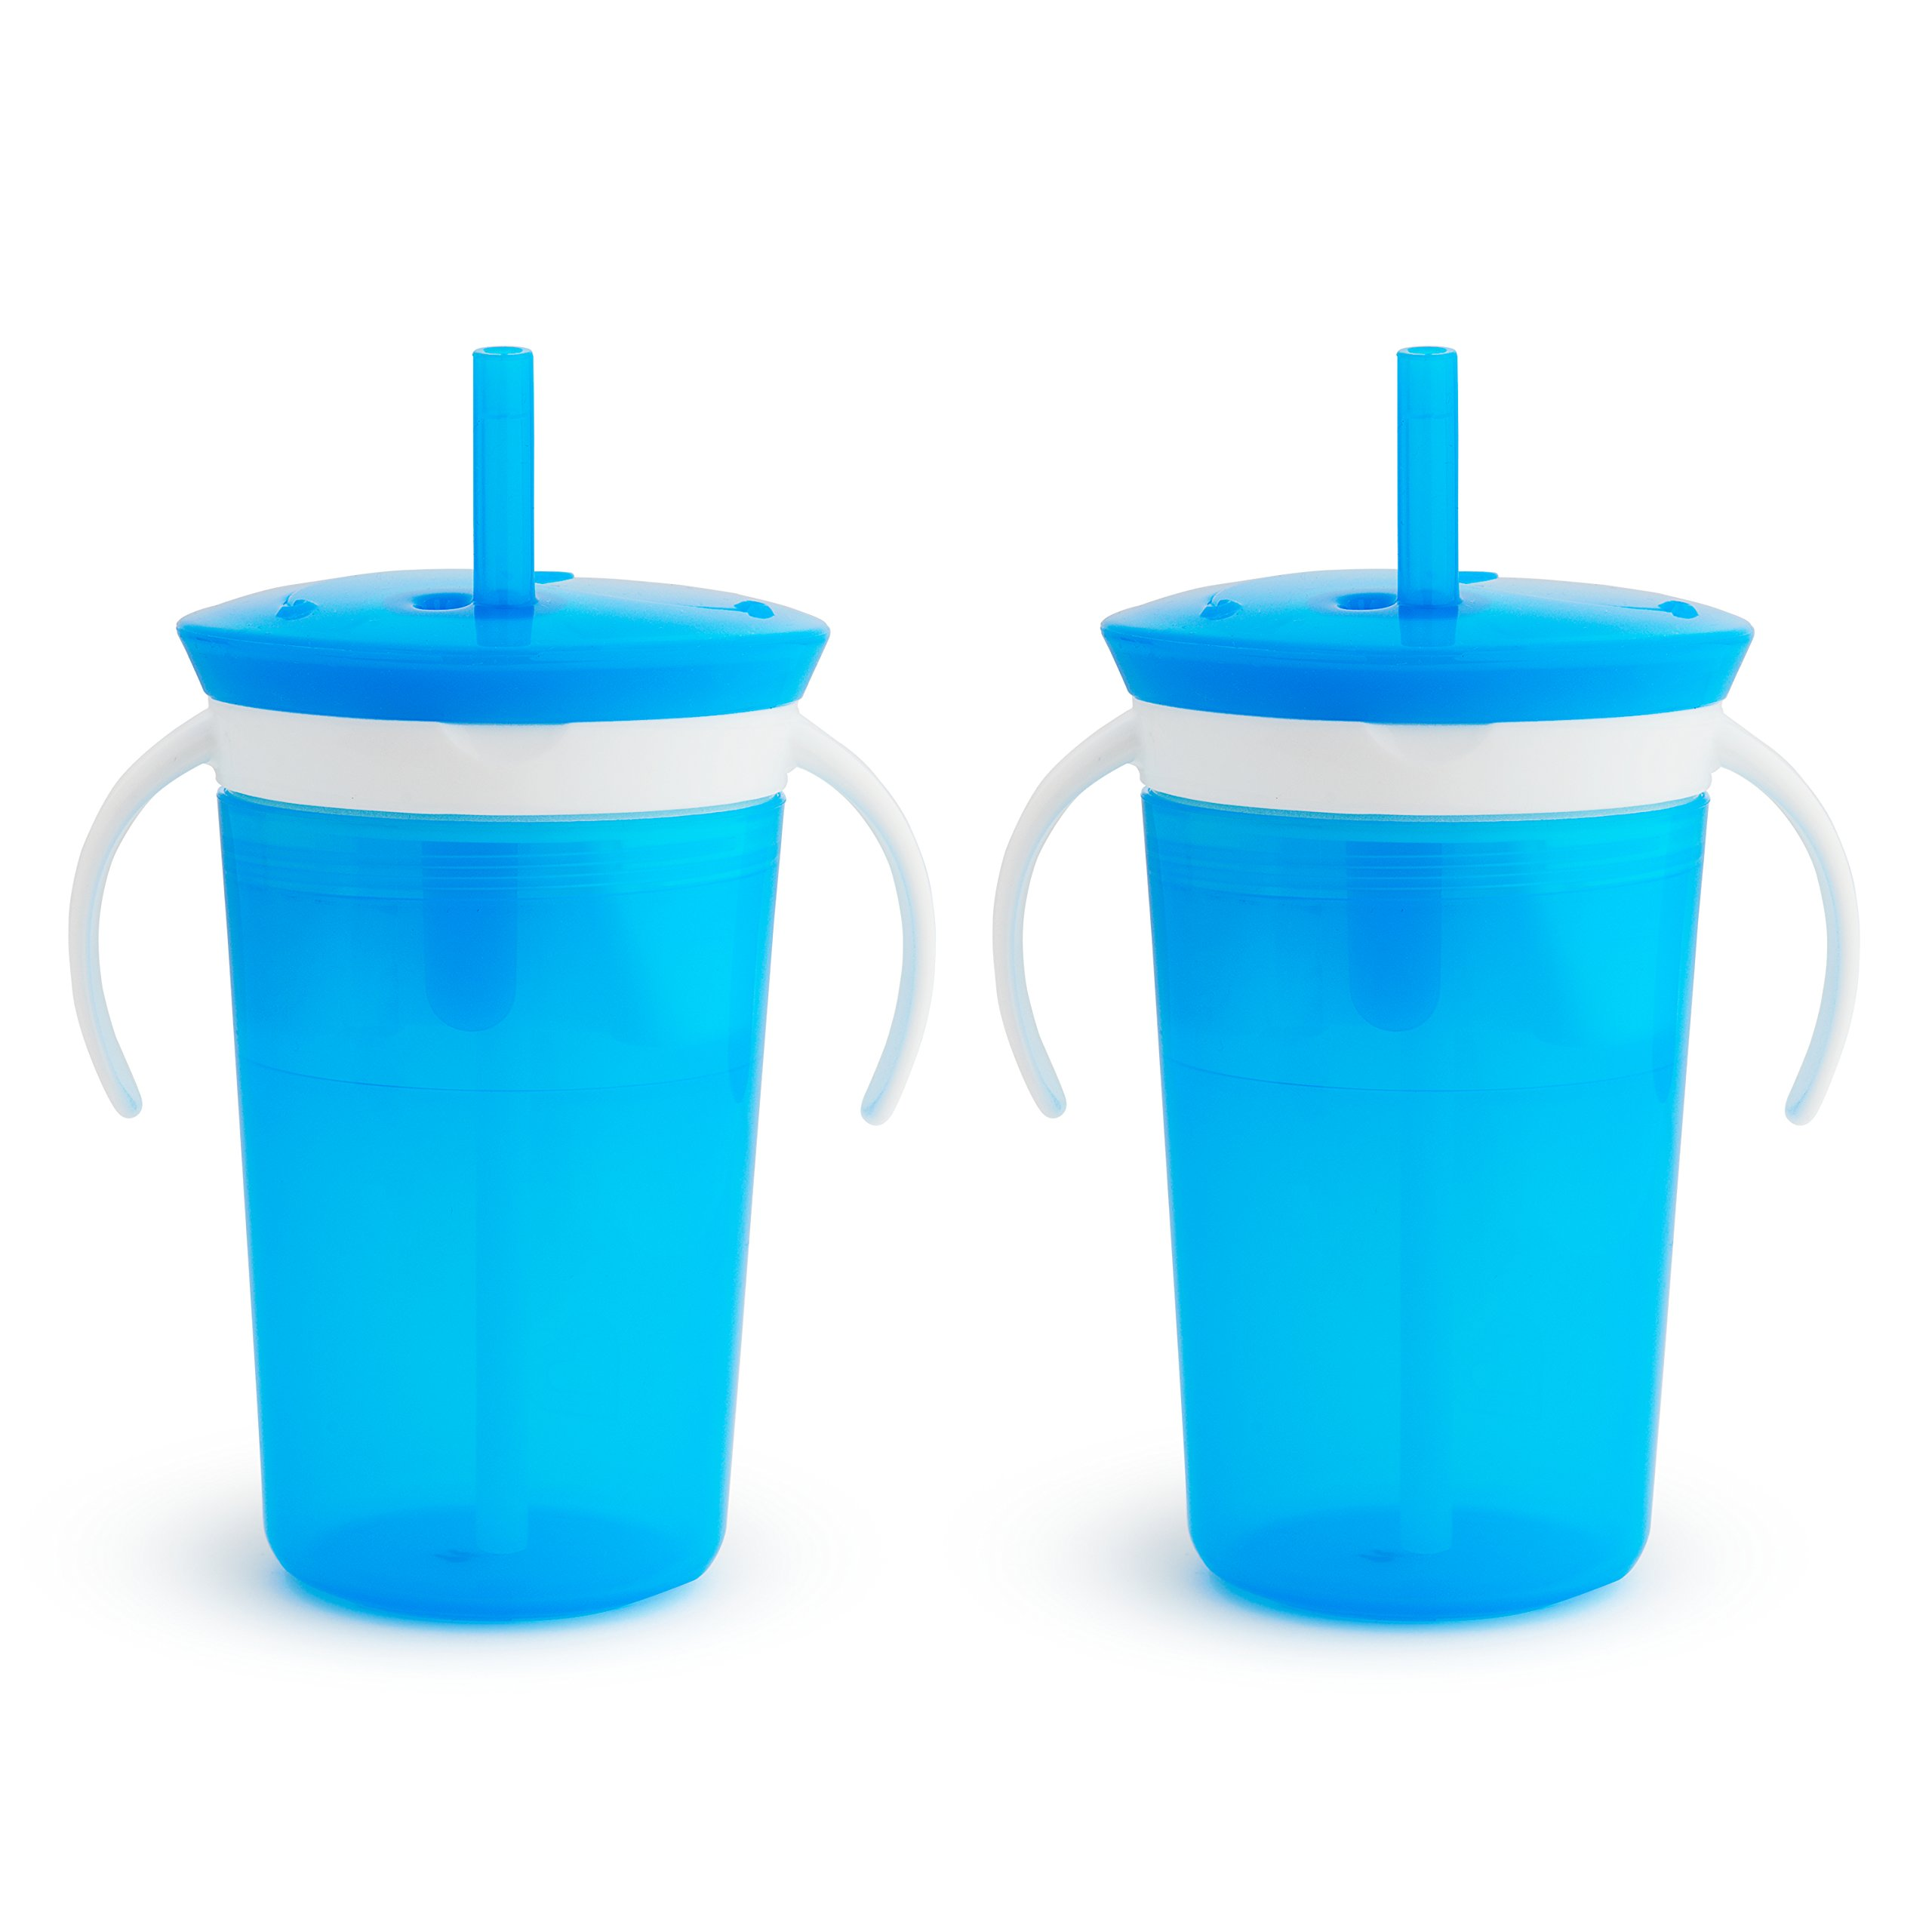 Munchkin SnackCatch & Sip 2-in-1 Snack Catcher and 2 Piece Spill-Proof Cup, Blue by Munchkin